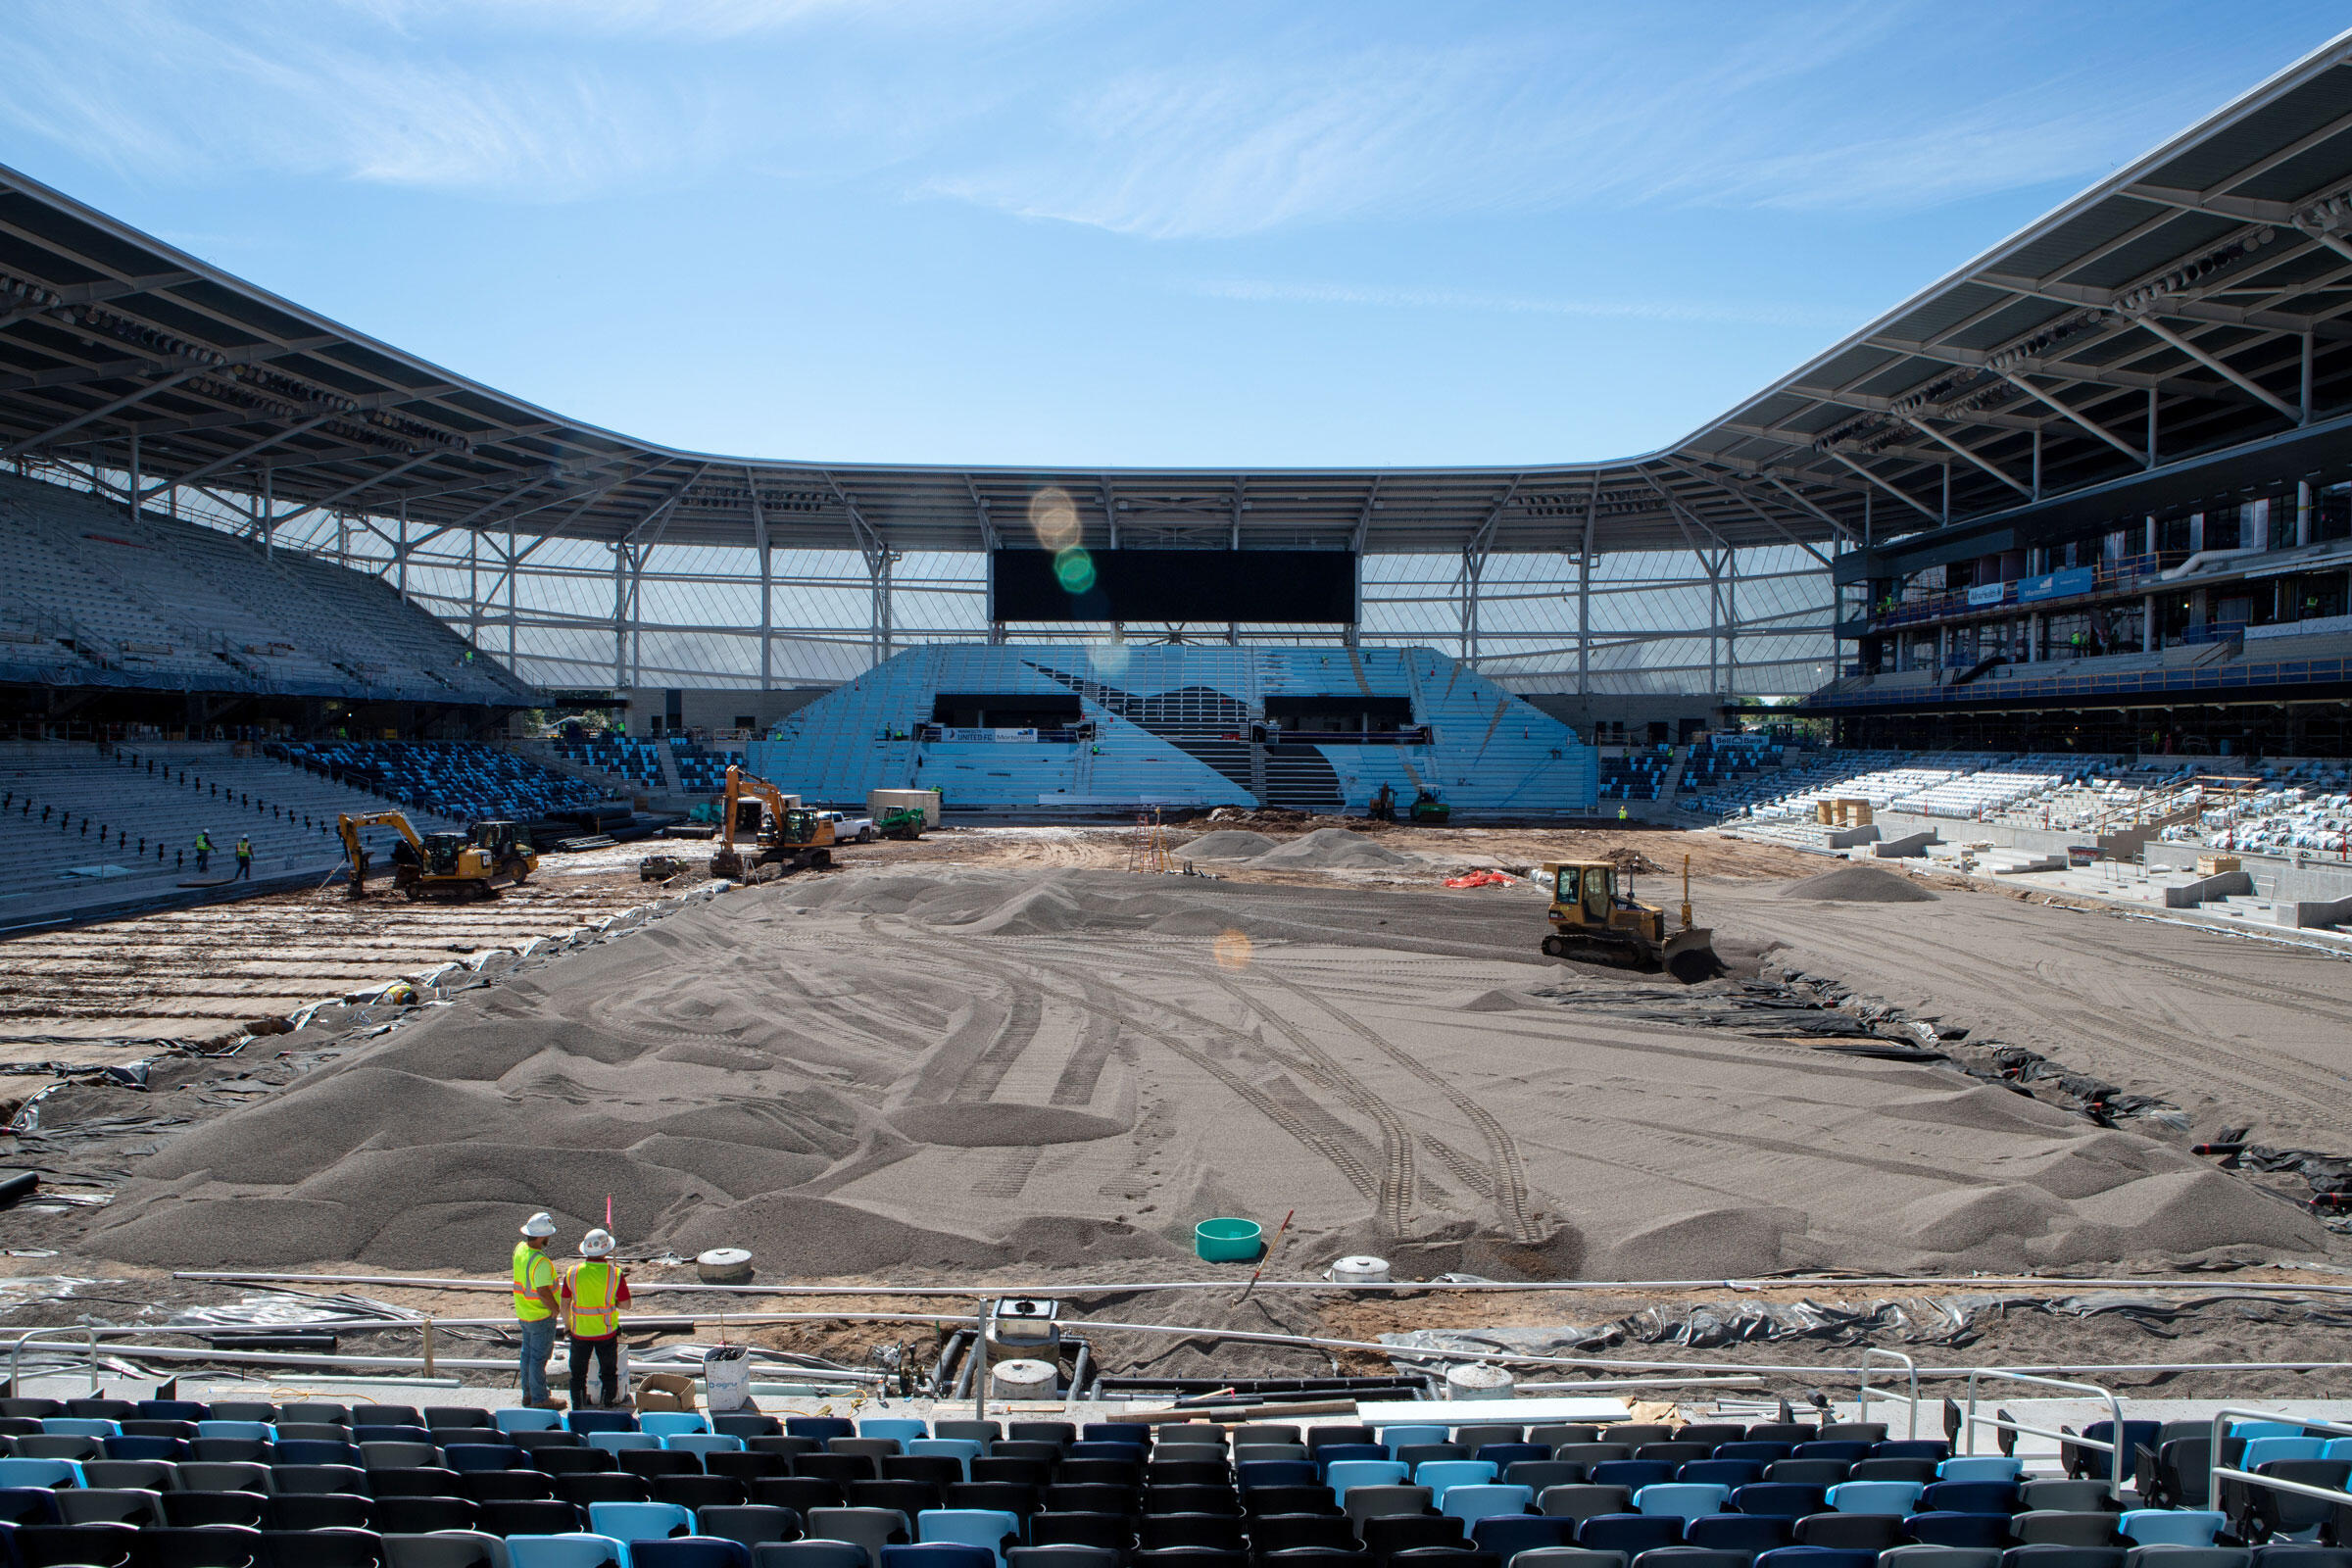 The exterior of Allianz Field has little glass, but fans will still be able to discern features outside the stadium through the translucent PTFE material that makes up the majority of the facade.